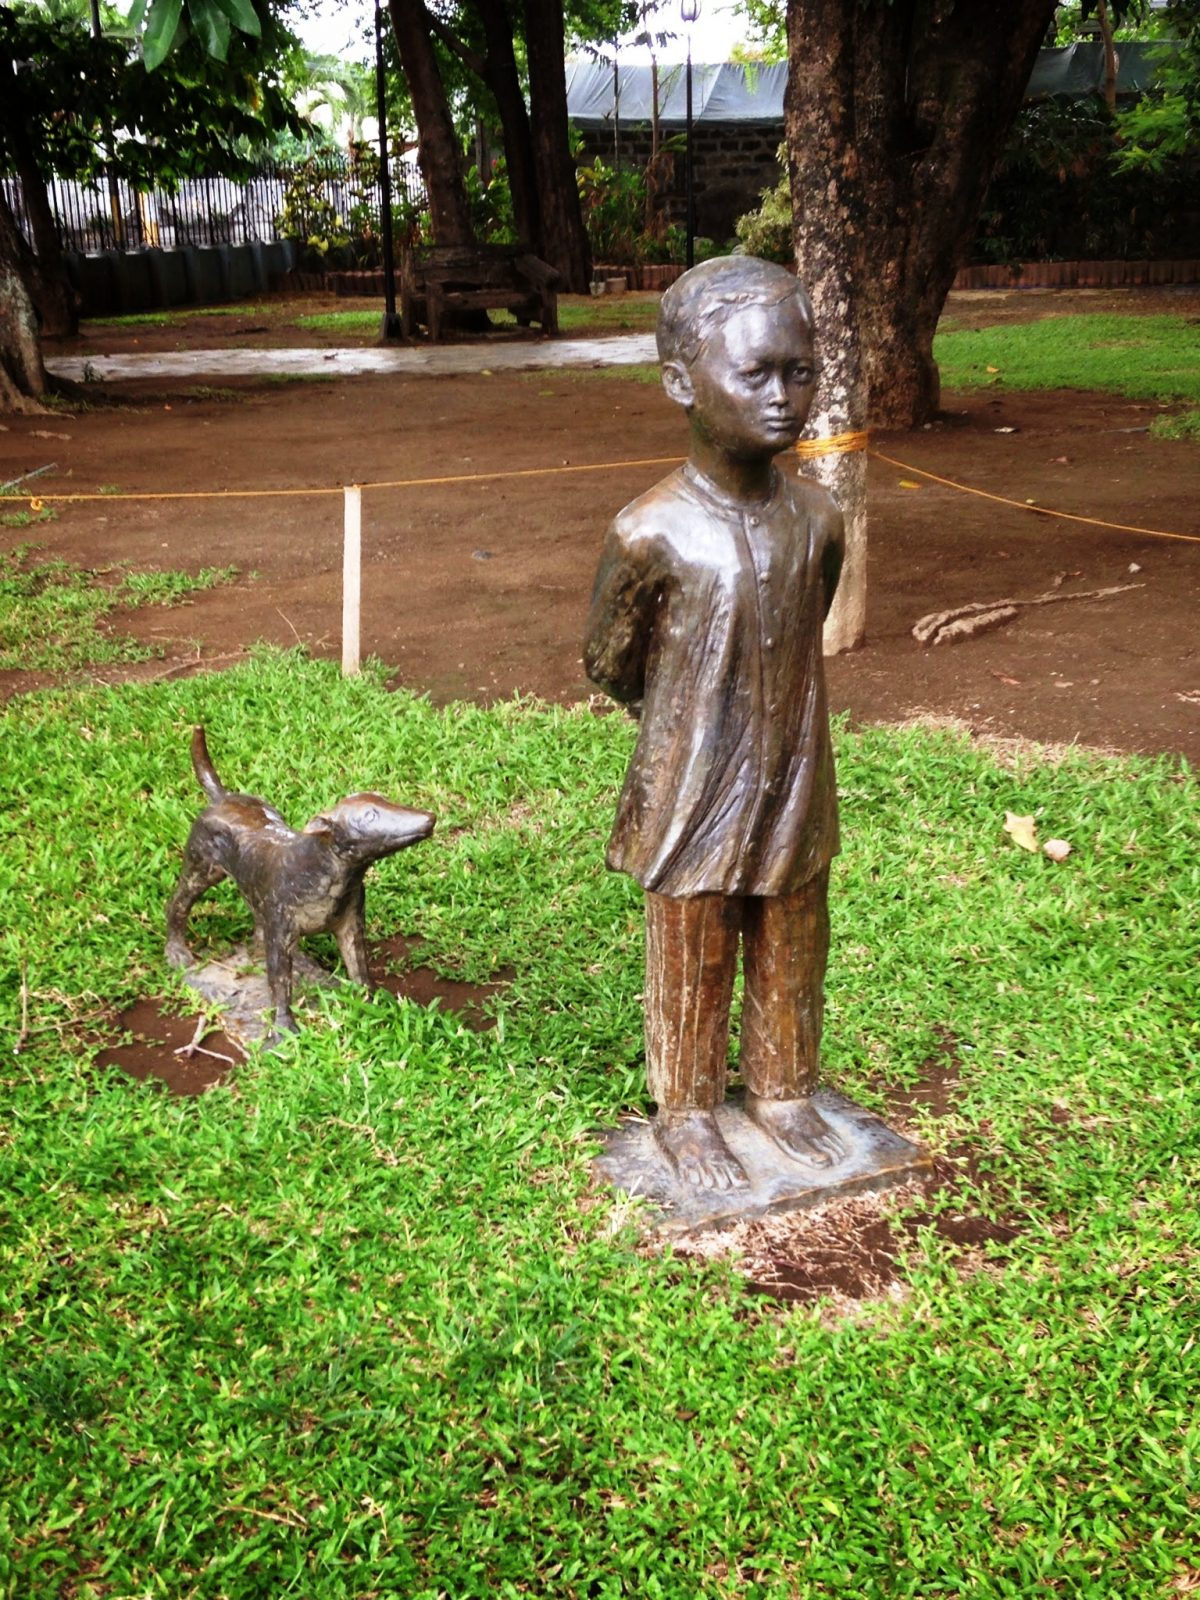 A young Jose Rizal and his dog. Sculpture by Dudley Diaz.